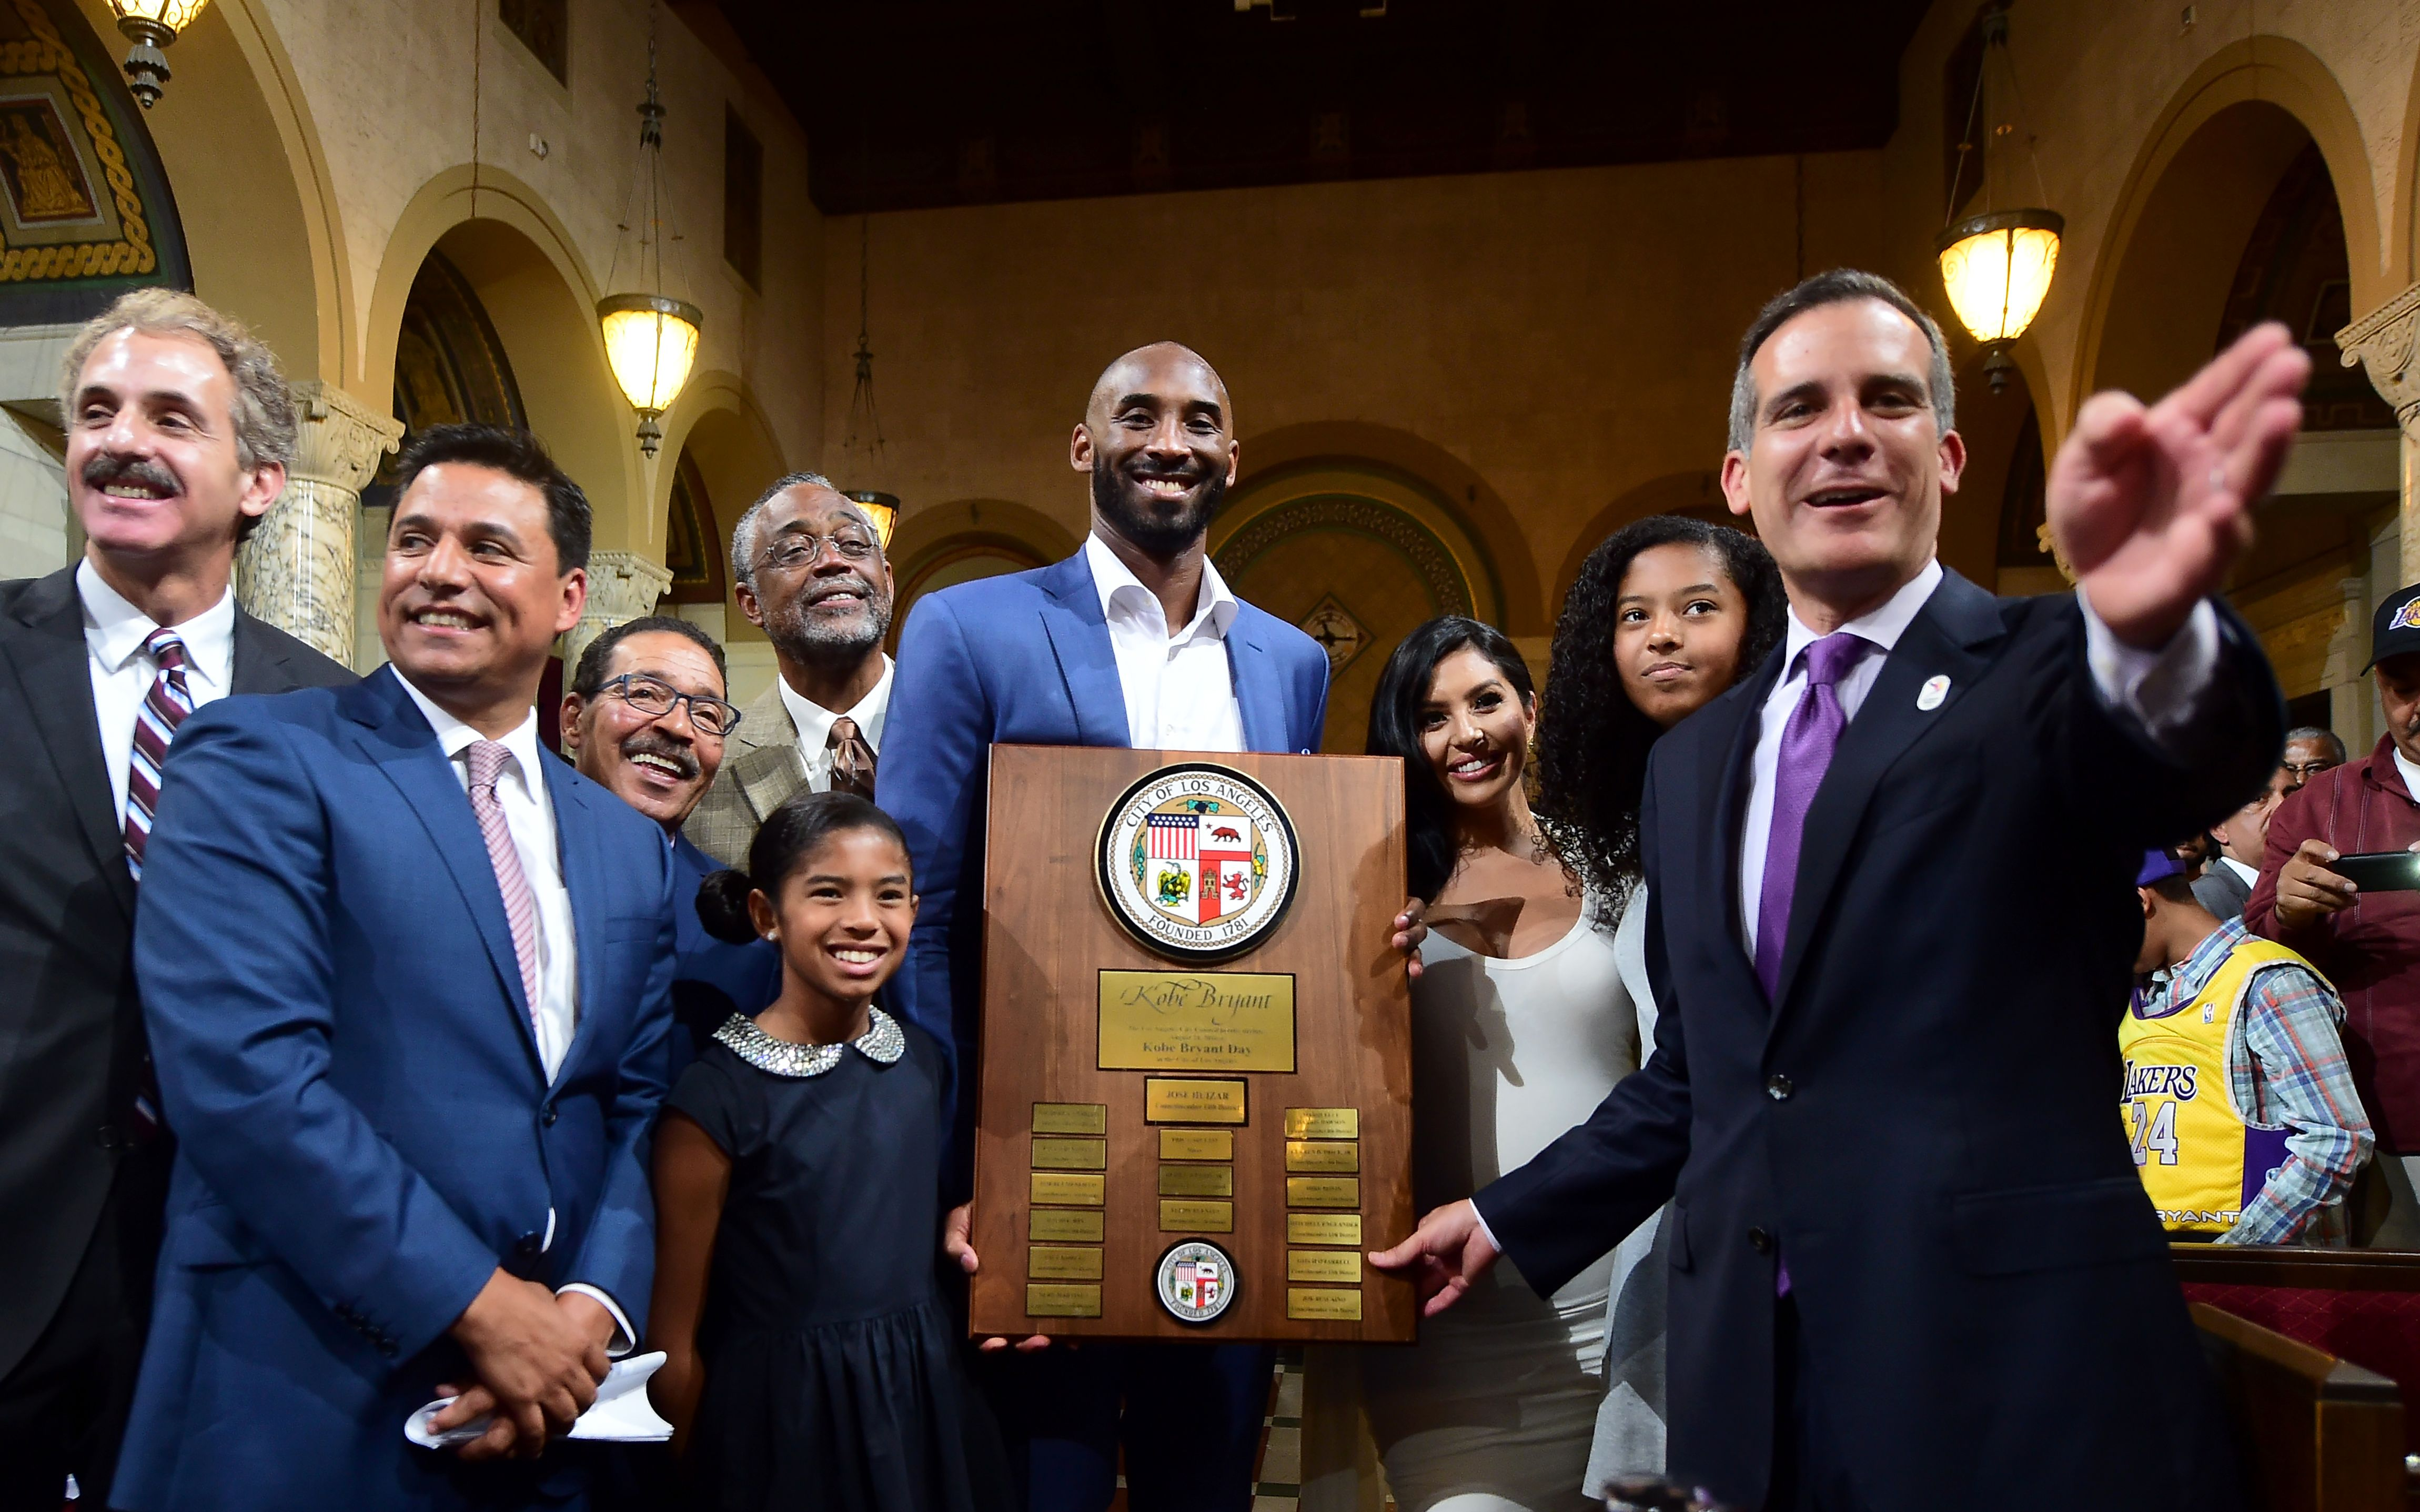 Los Angeles Mayor Eric Garcetti, right, gestures while posing with Kobe Bryant and his family after Bryant was honored at a city council meeting with Kobe Bryant Day on August 24, 2016.